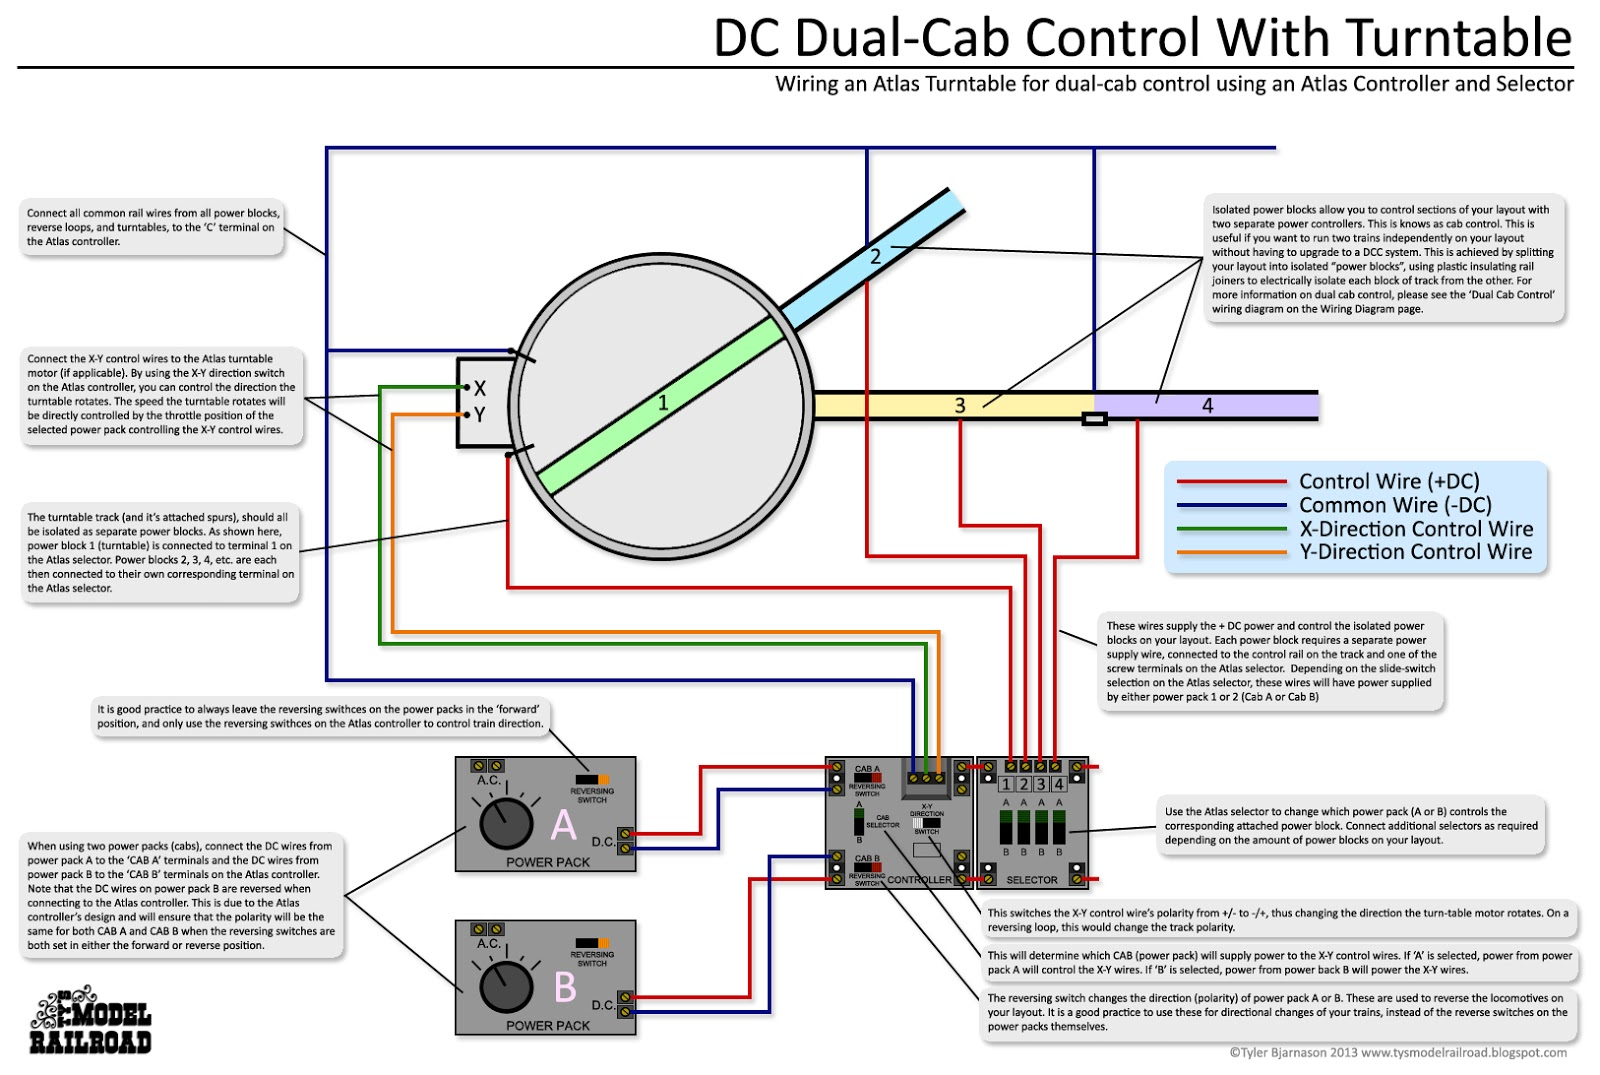 hight resolution of how to use dual cab control to power and operate a turntable and turntable motor using